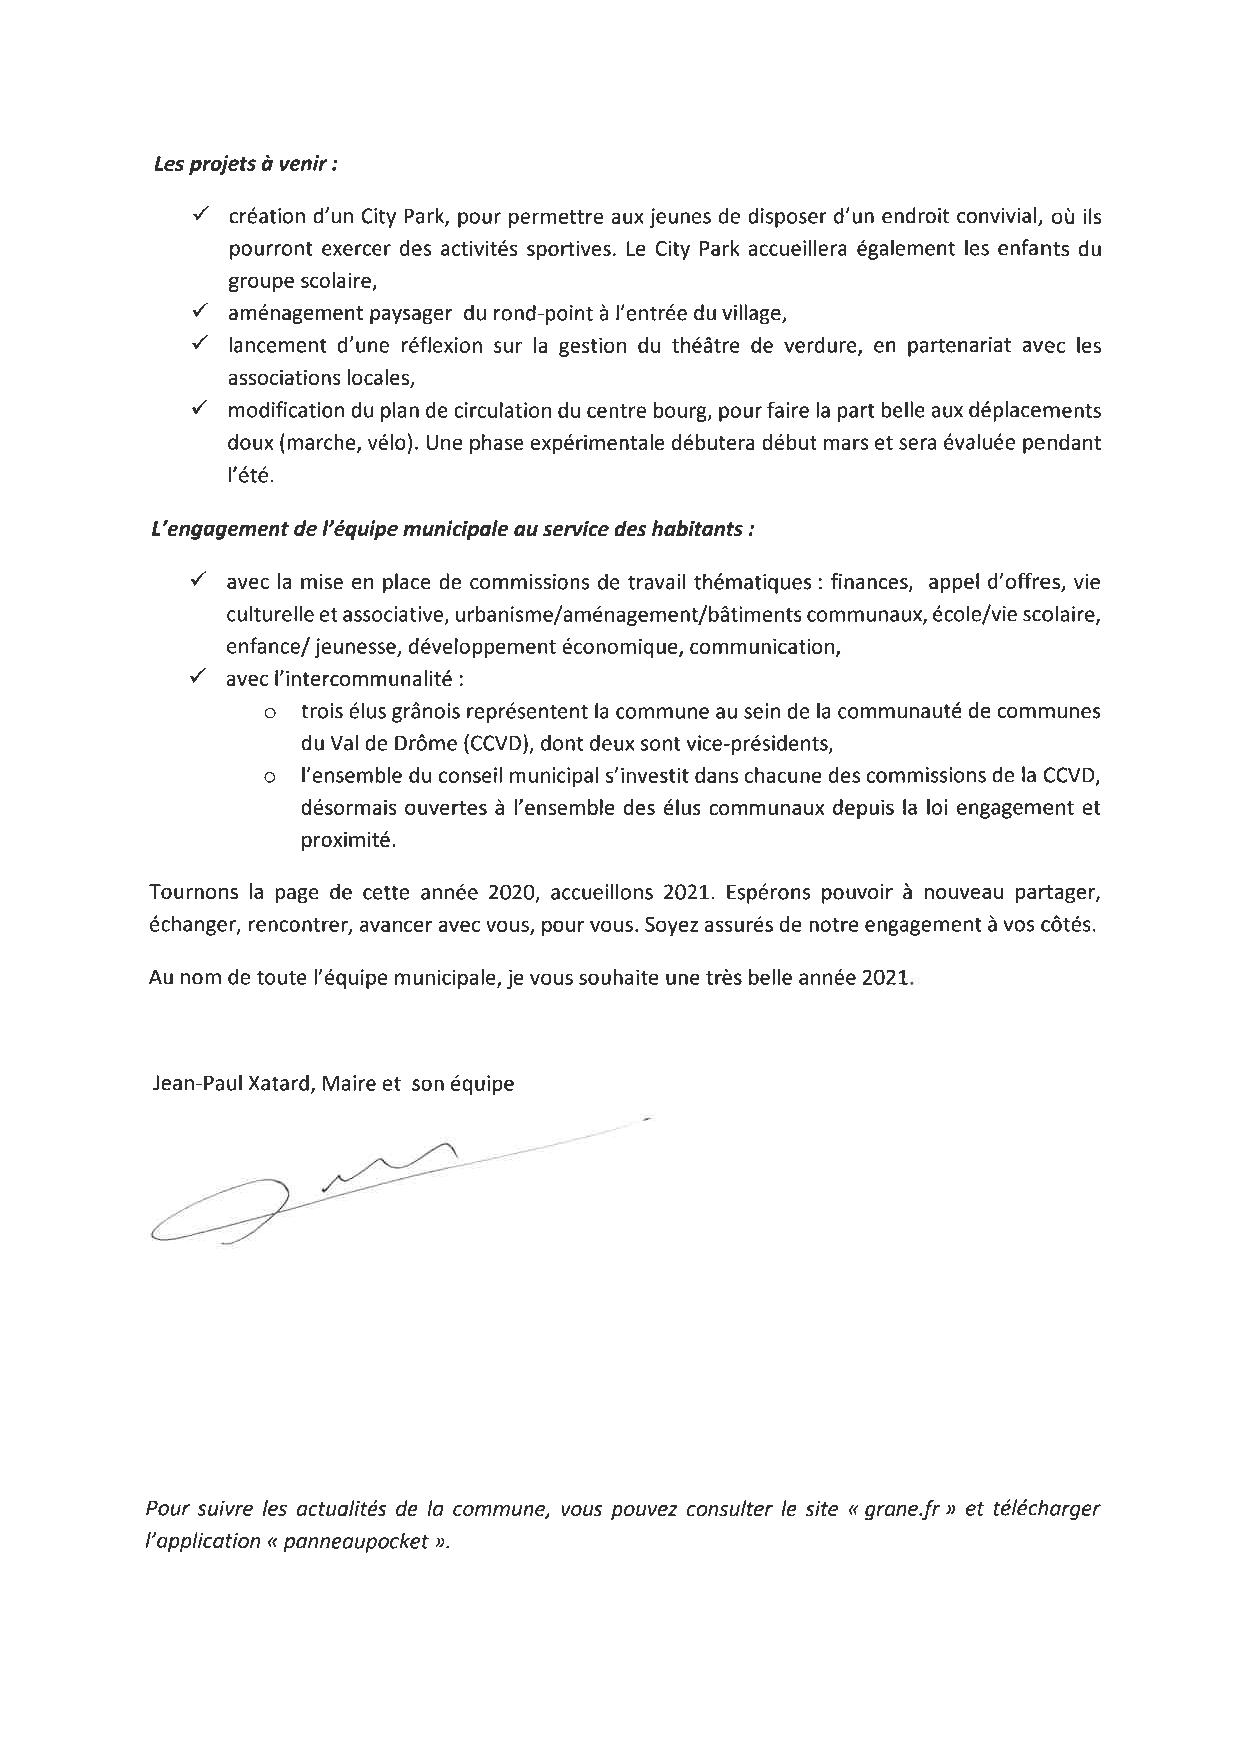 VOEUX ECRITS-page-002.jpg